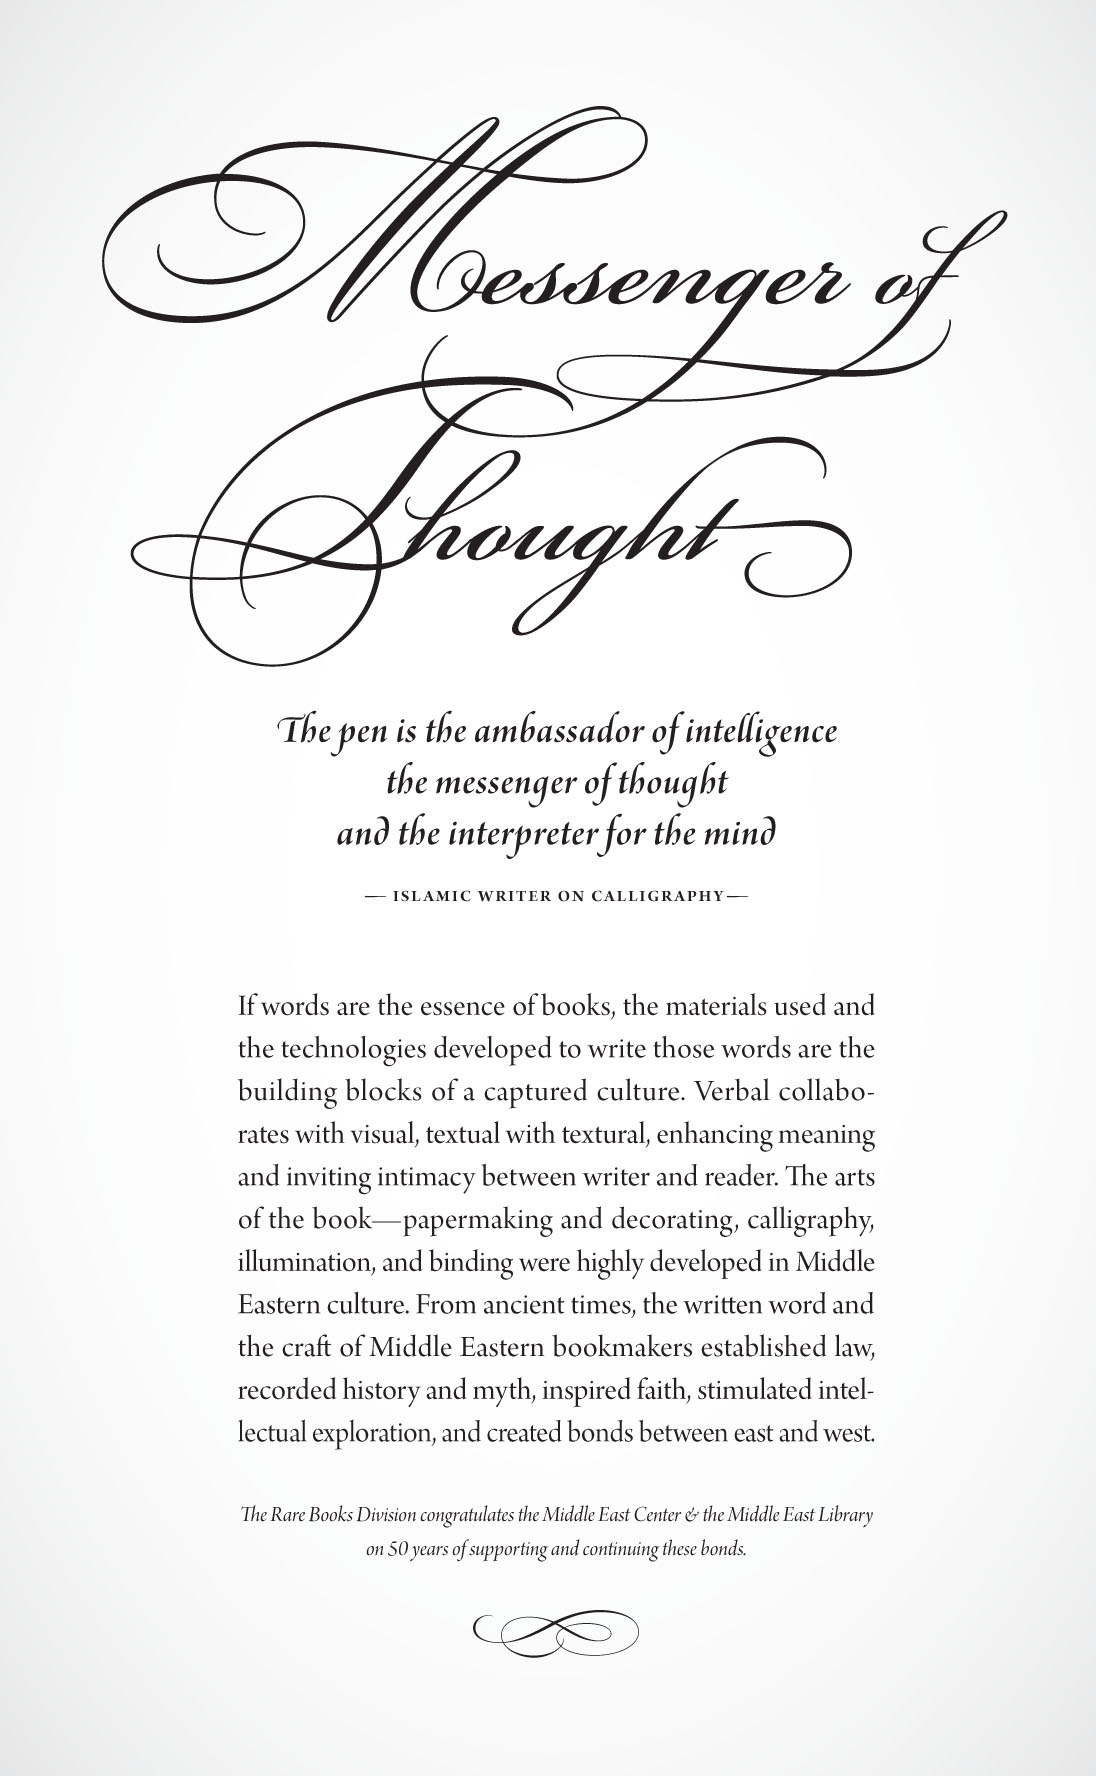 Messenger of Thought Poster, David Wolske, 2011